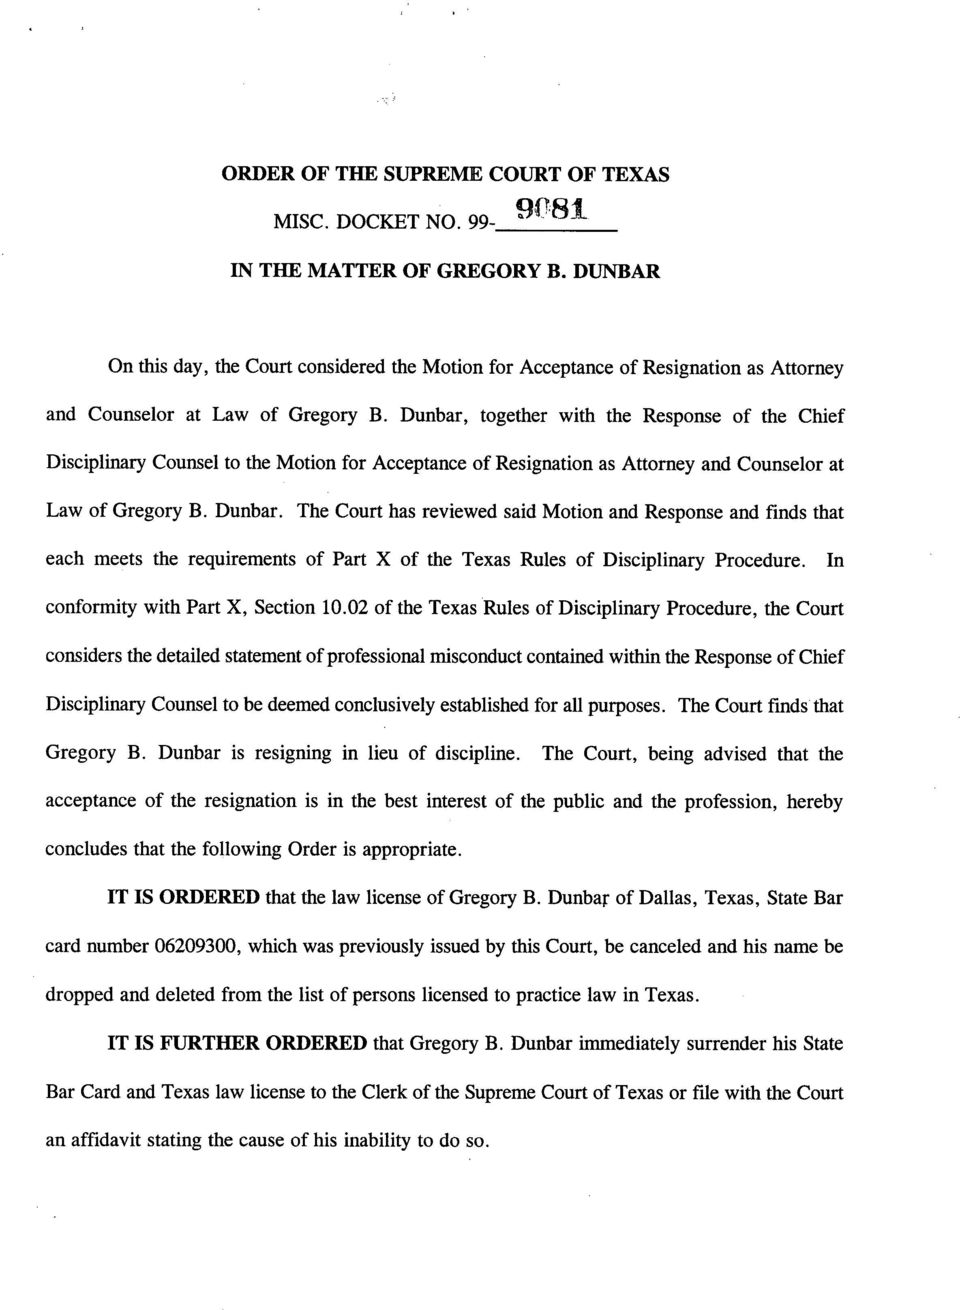 Dunbar, together with the Response of the Chief Disciplinary Counsel to the Motion for Acceptance of Resignation as Attorney and Counselor at Law of Gregory B. Dunbar.